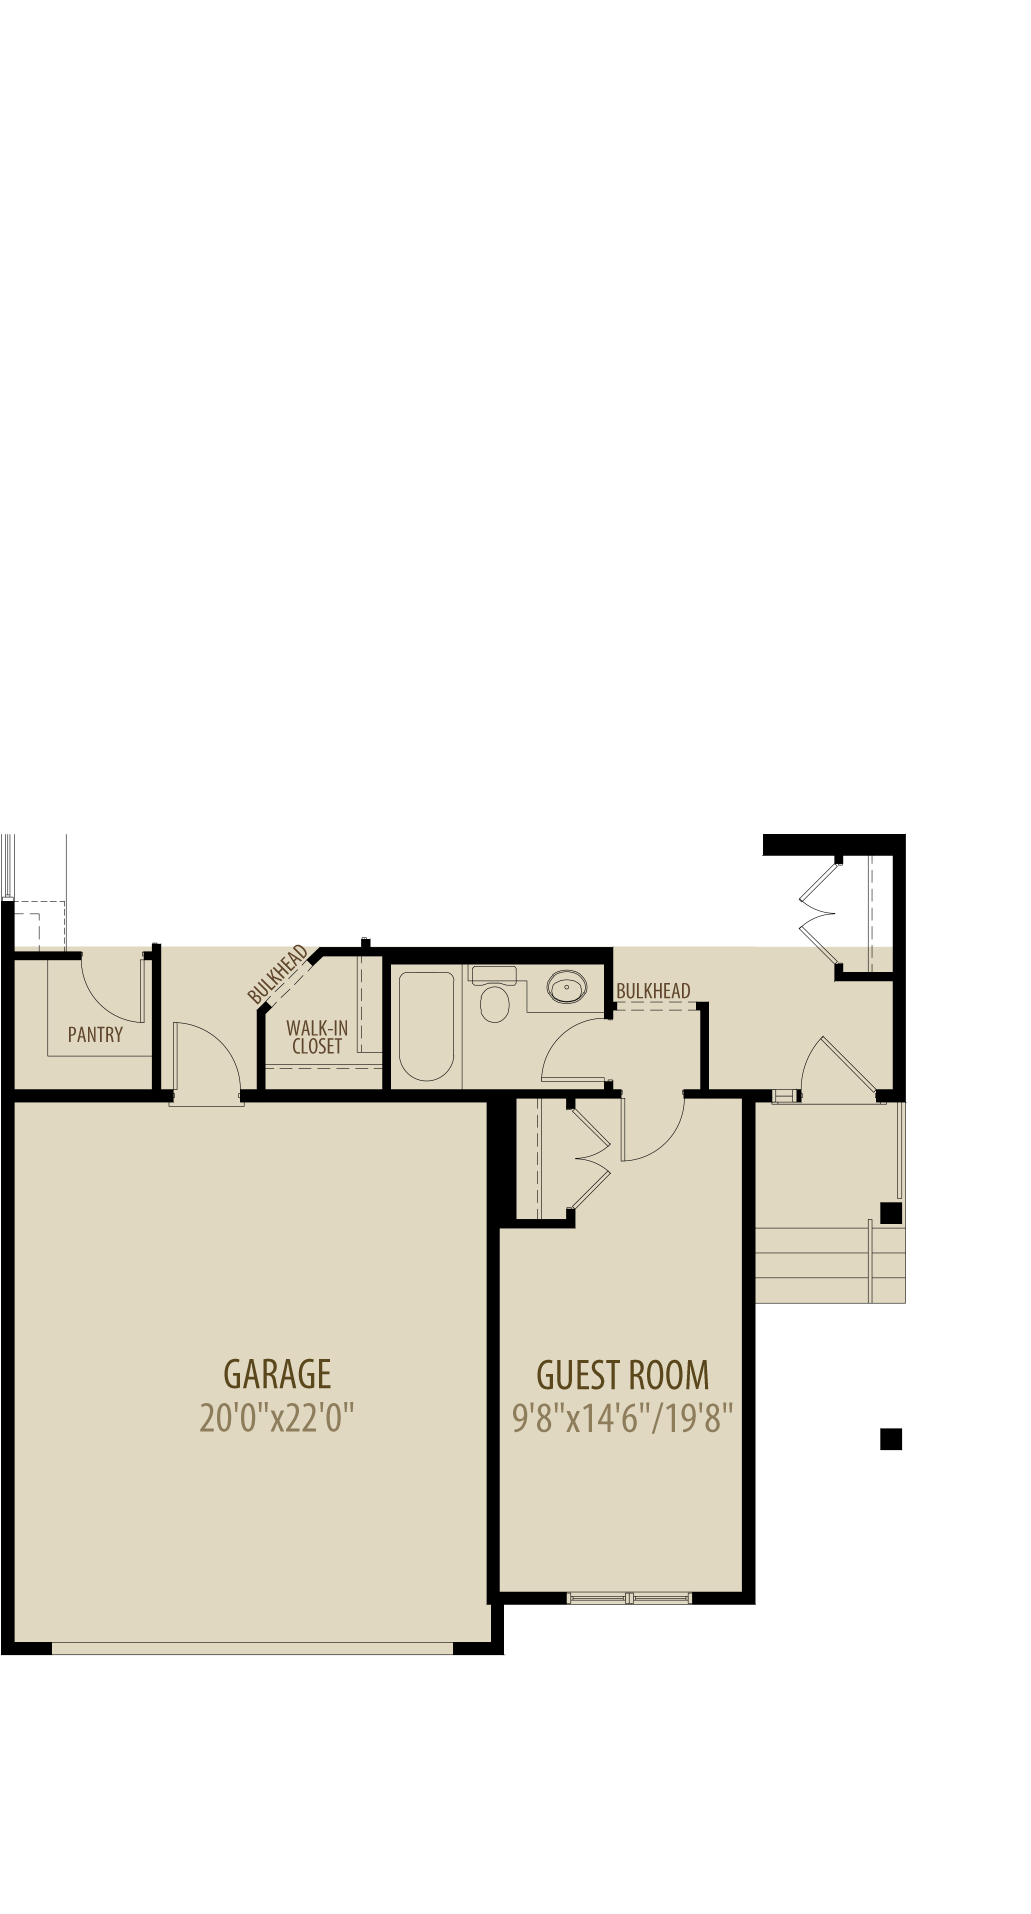 Guest Room Adds 213Sq Ft